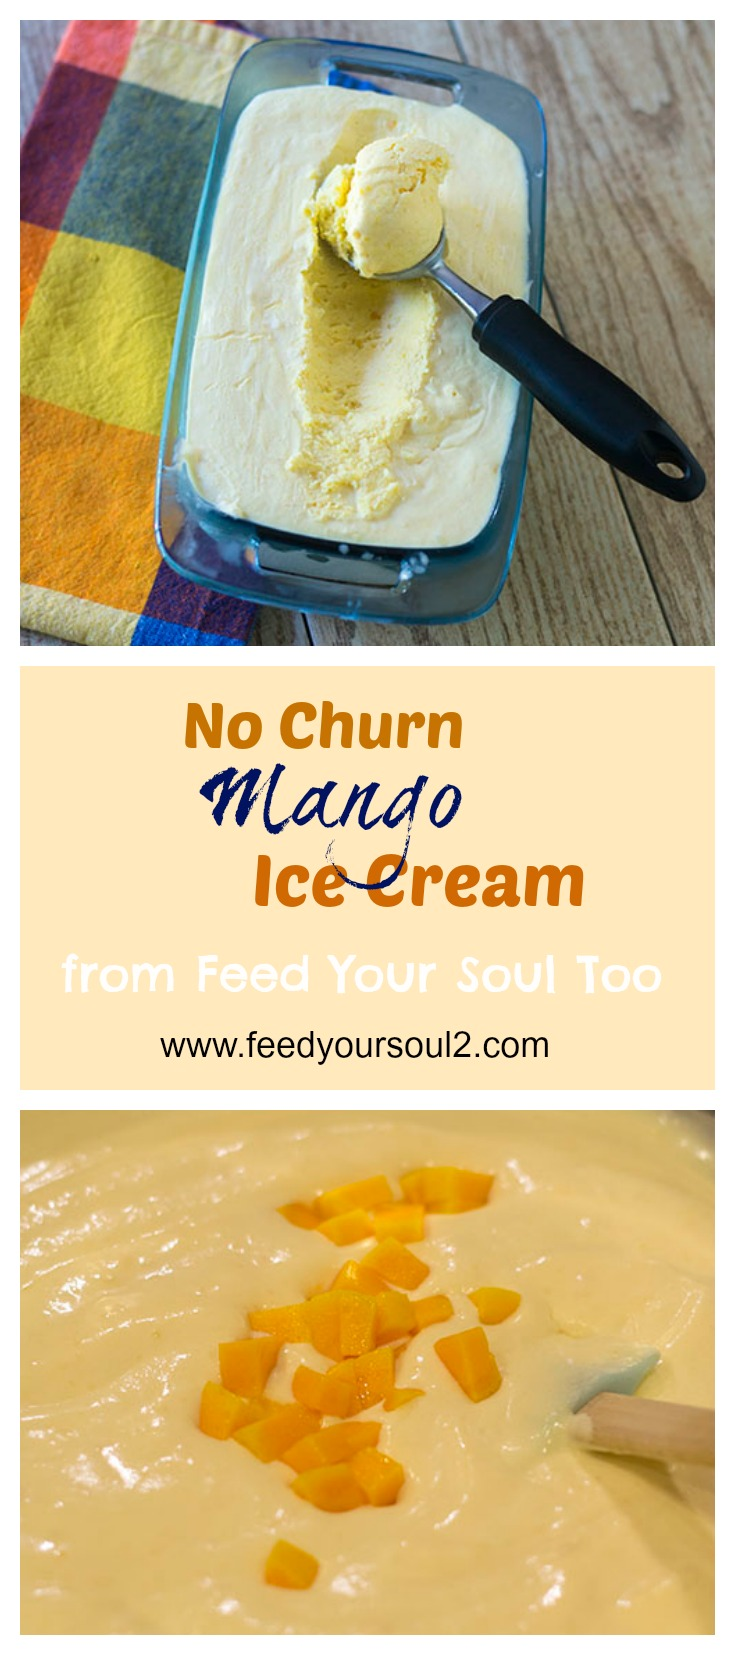 No Churn Mango Ice Cream #Dessert #icecream #mango | feedyoursoul2.com